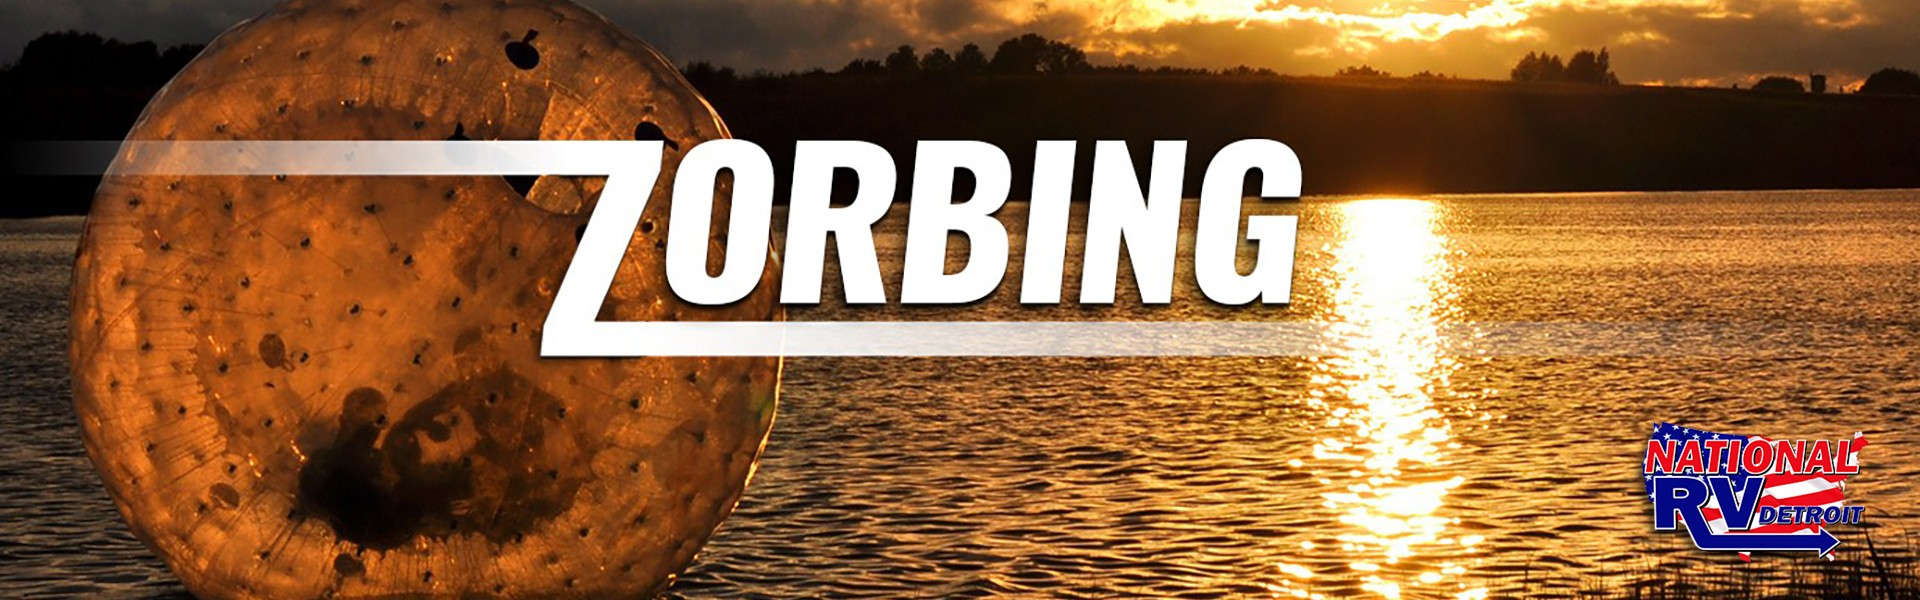 zorbing on the lake at sunset - ourdoor water game